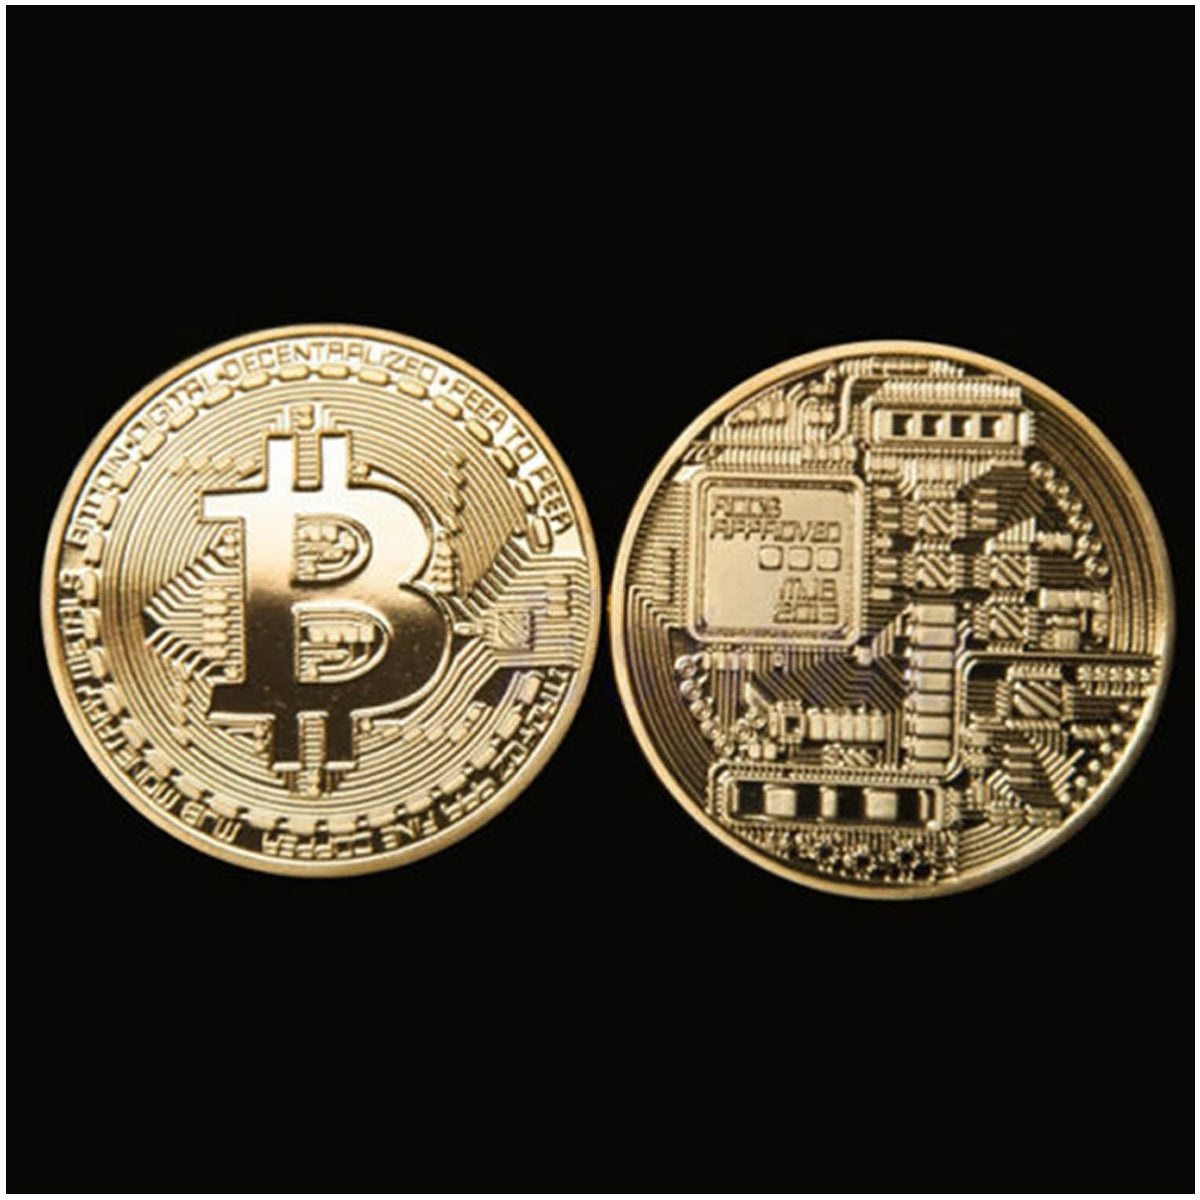 Gold-plated Iron-made Beautifully Designed 24k Casascius Bitcoins.